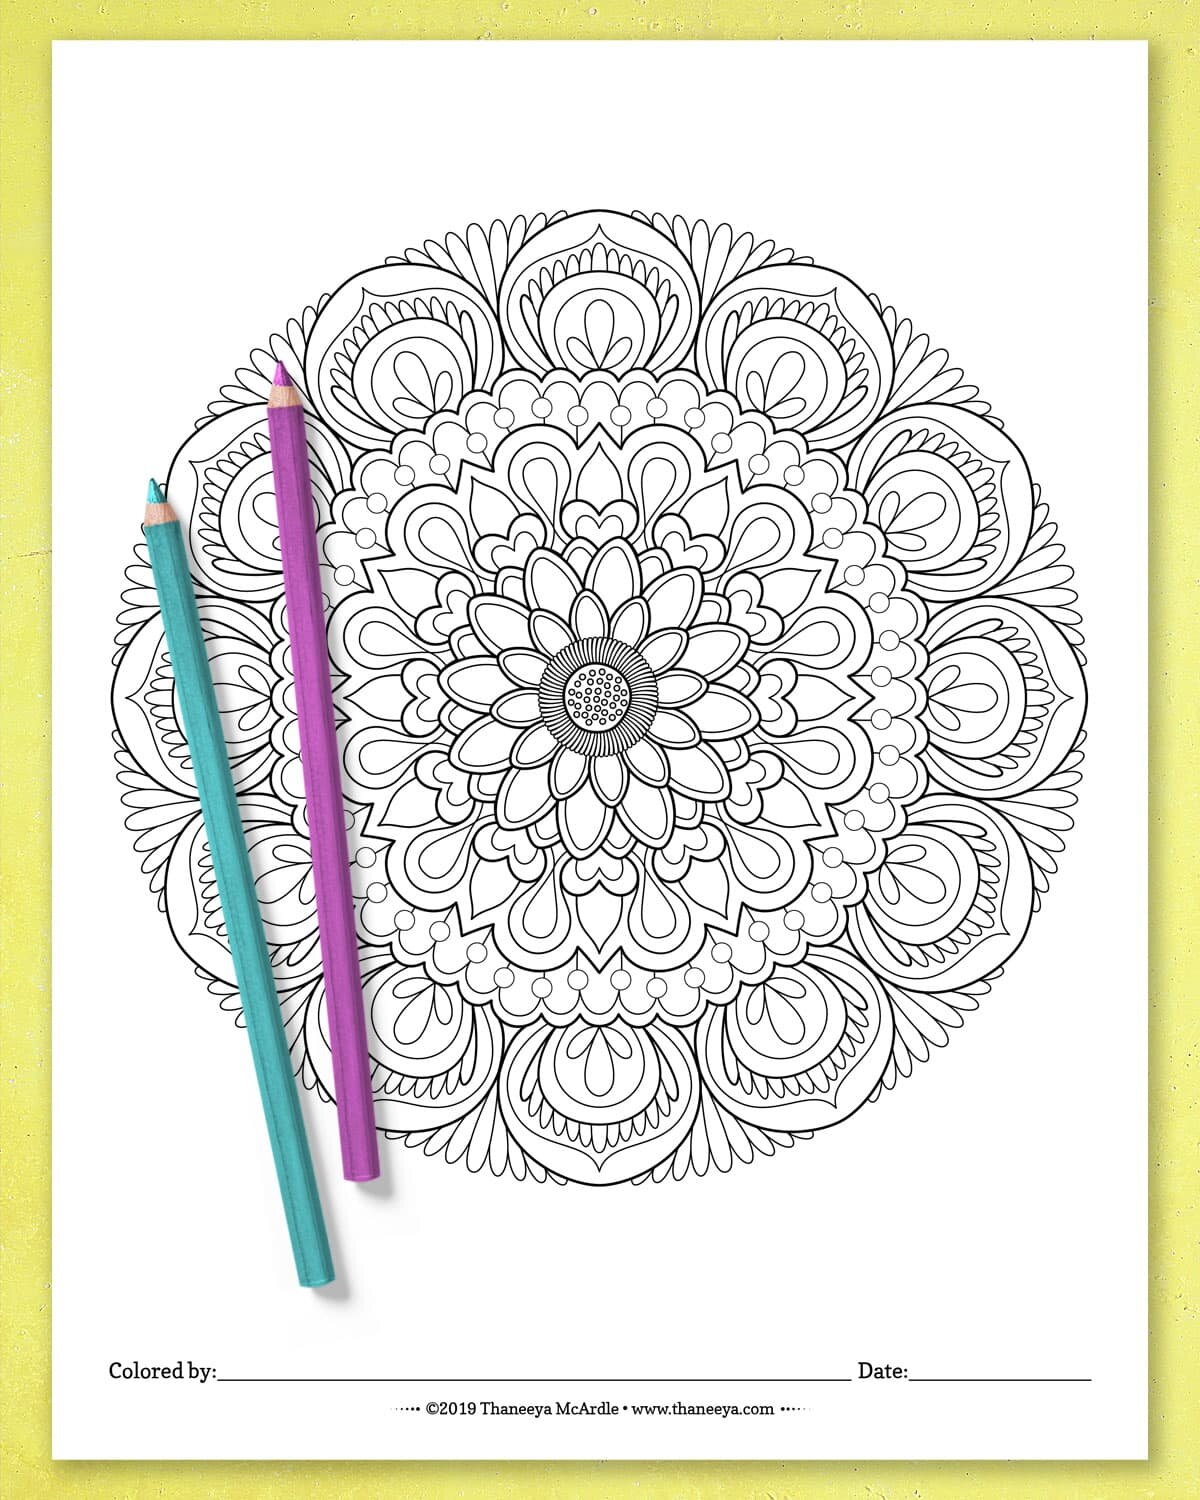 Mandala coloring pages | Free Coloring Pages | 1250x1000